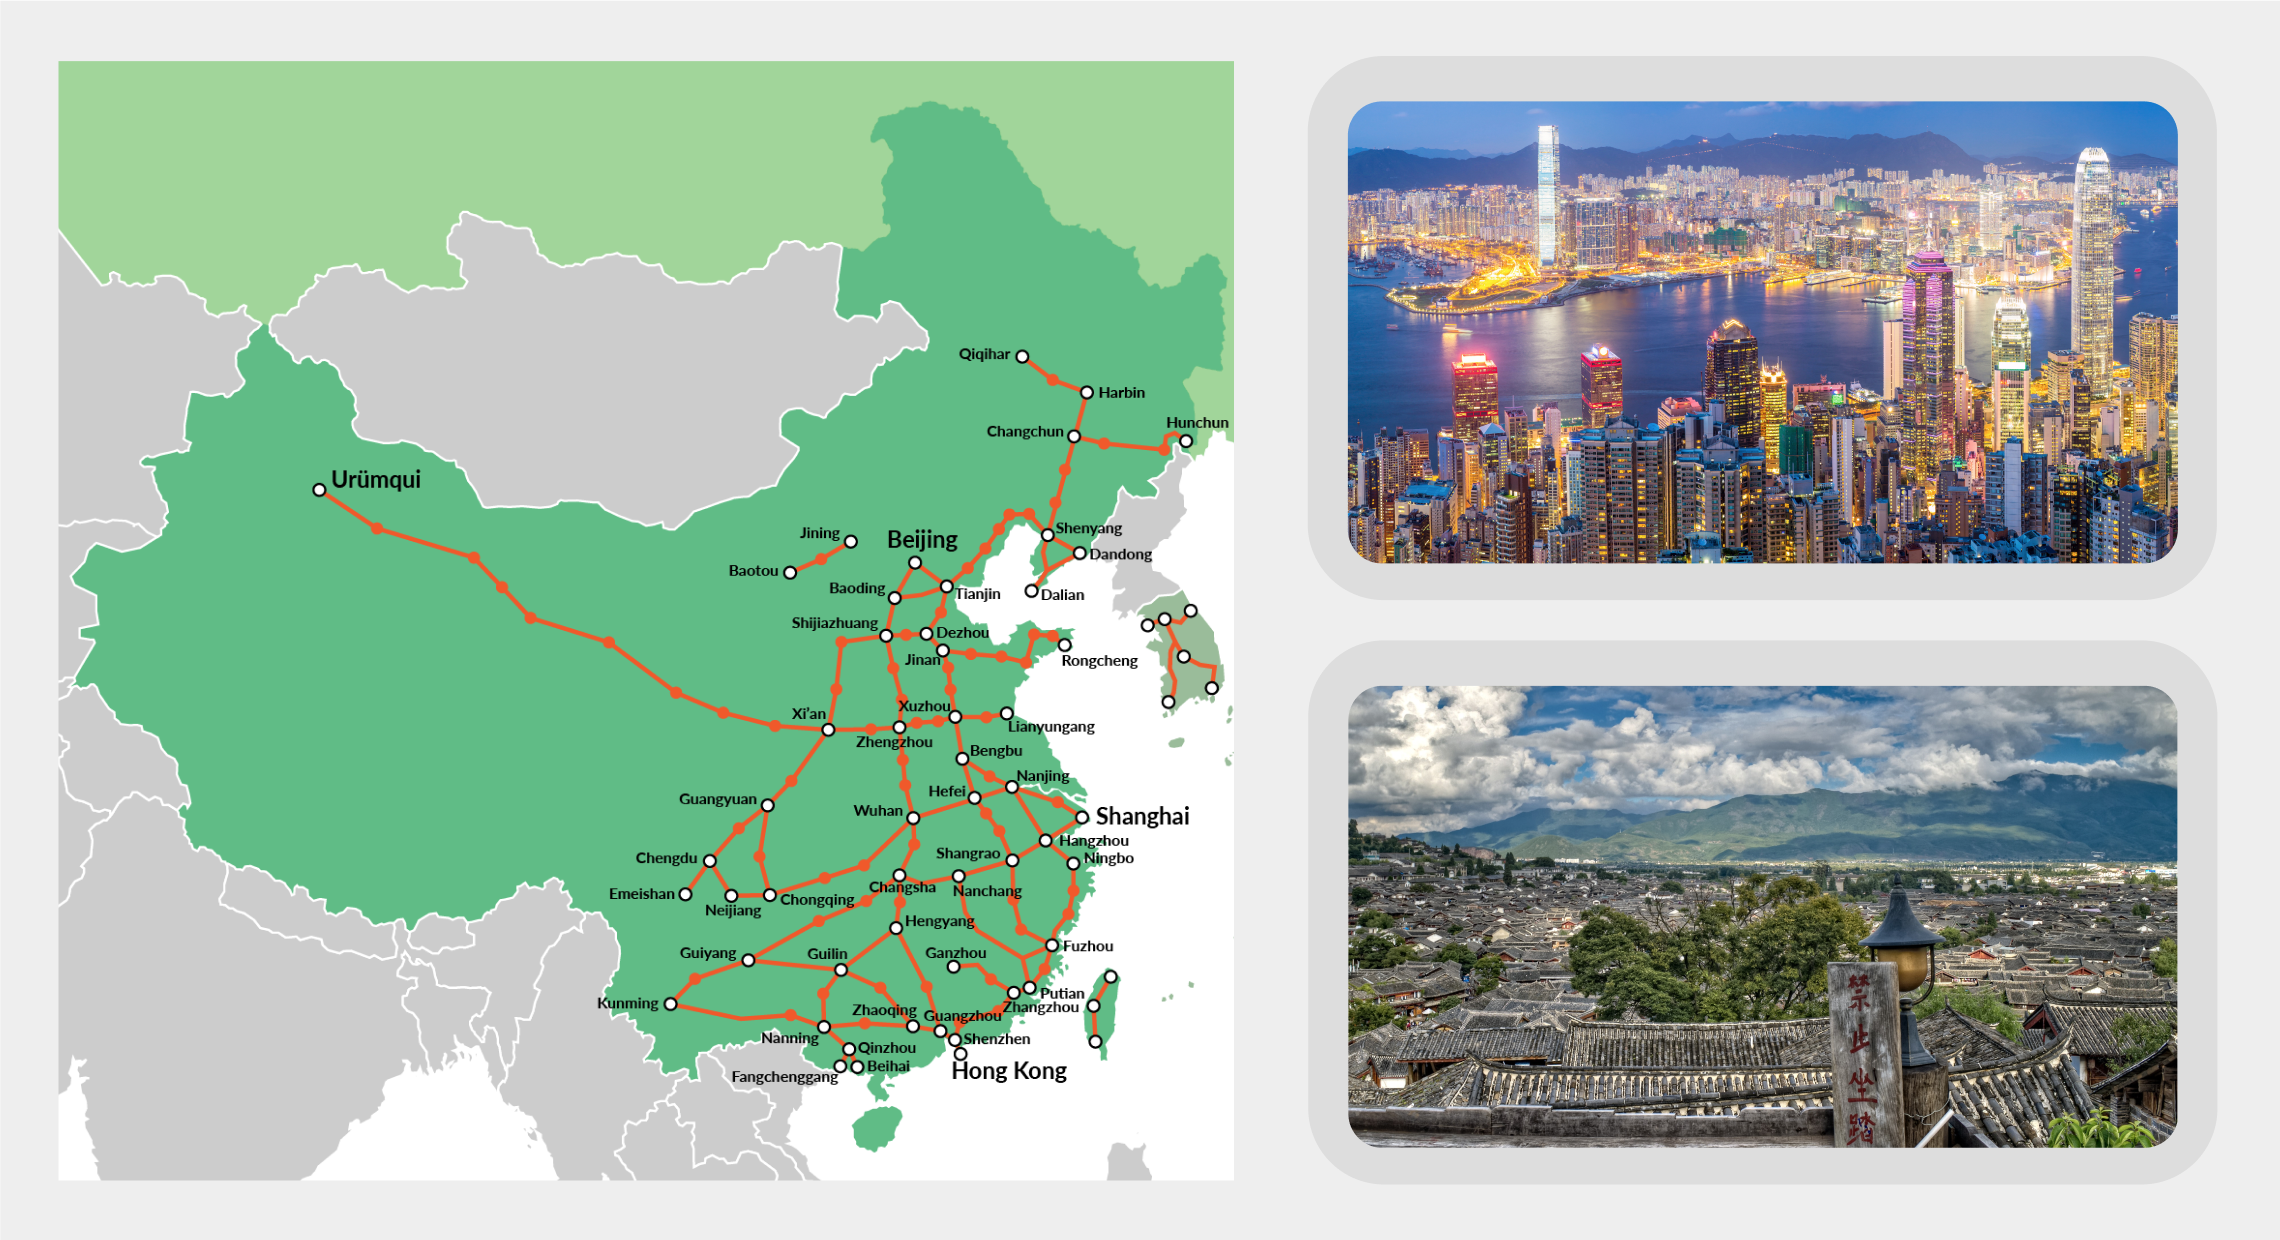 Map of high-speed rail corridors and major stations in China